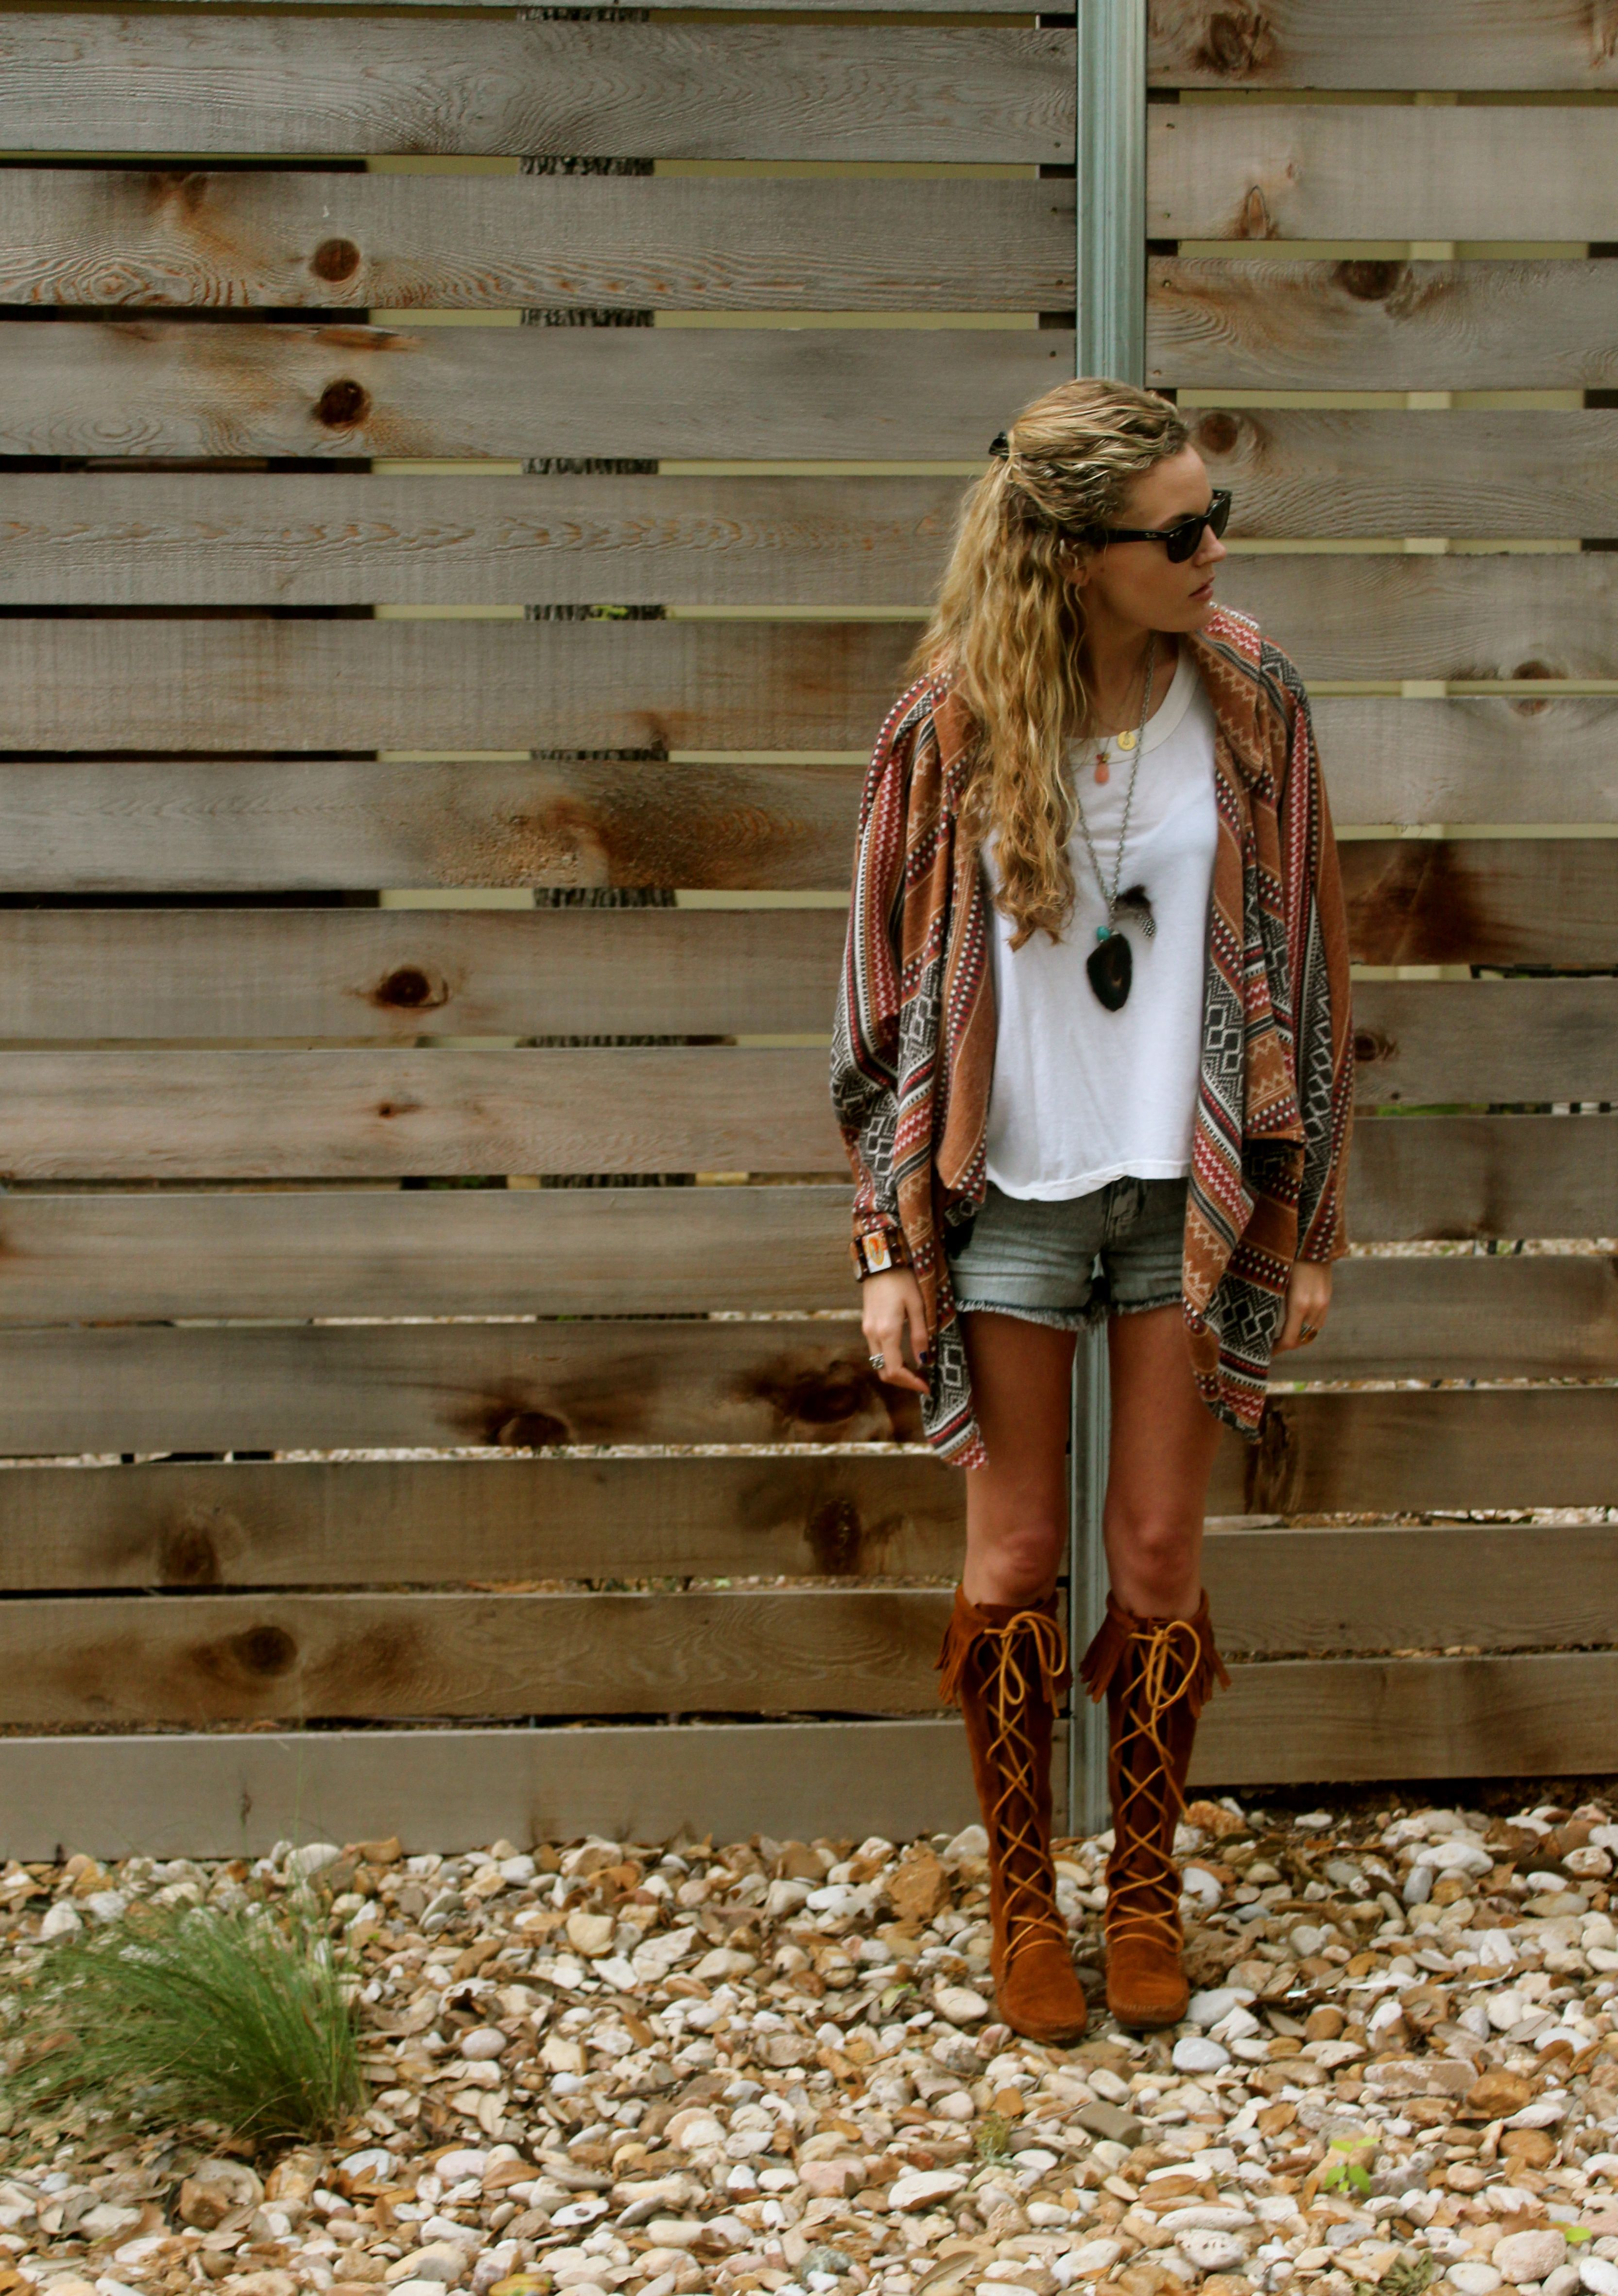 Minnetonka suede leather knee high tall lace up moccasin fringe boots - Minnetonka Knee Hi Fringed Laceup Boot Moccasins